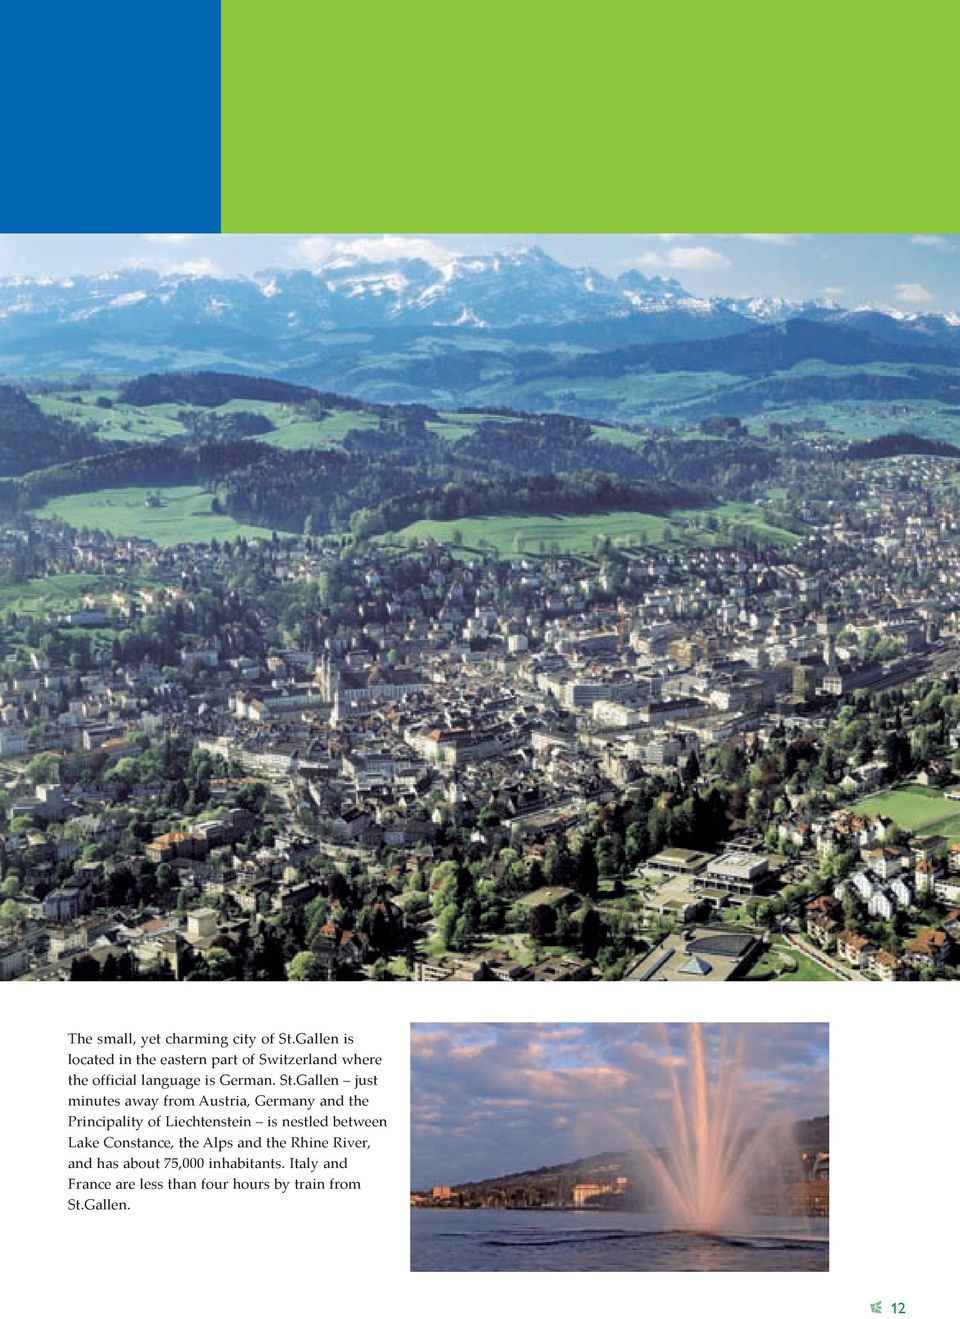 Gallen just minutes away from Austria, Germany and the Principality of Liechtenstein is nestled